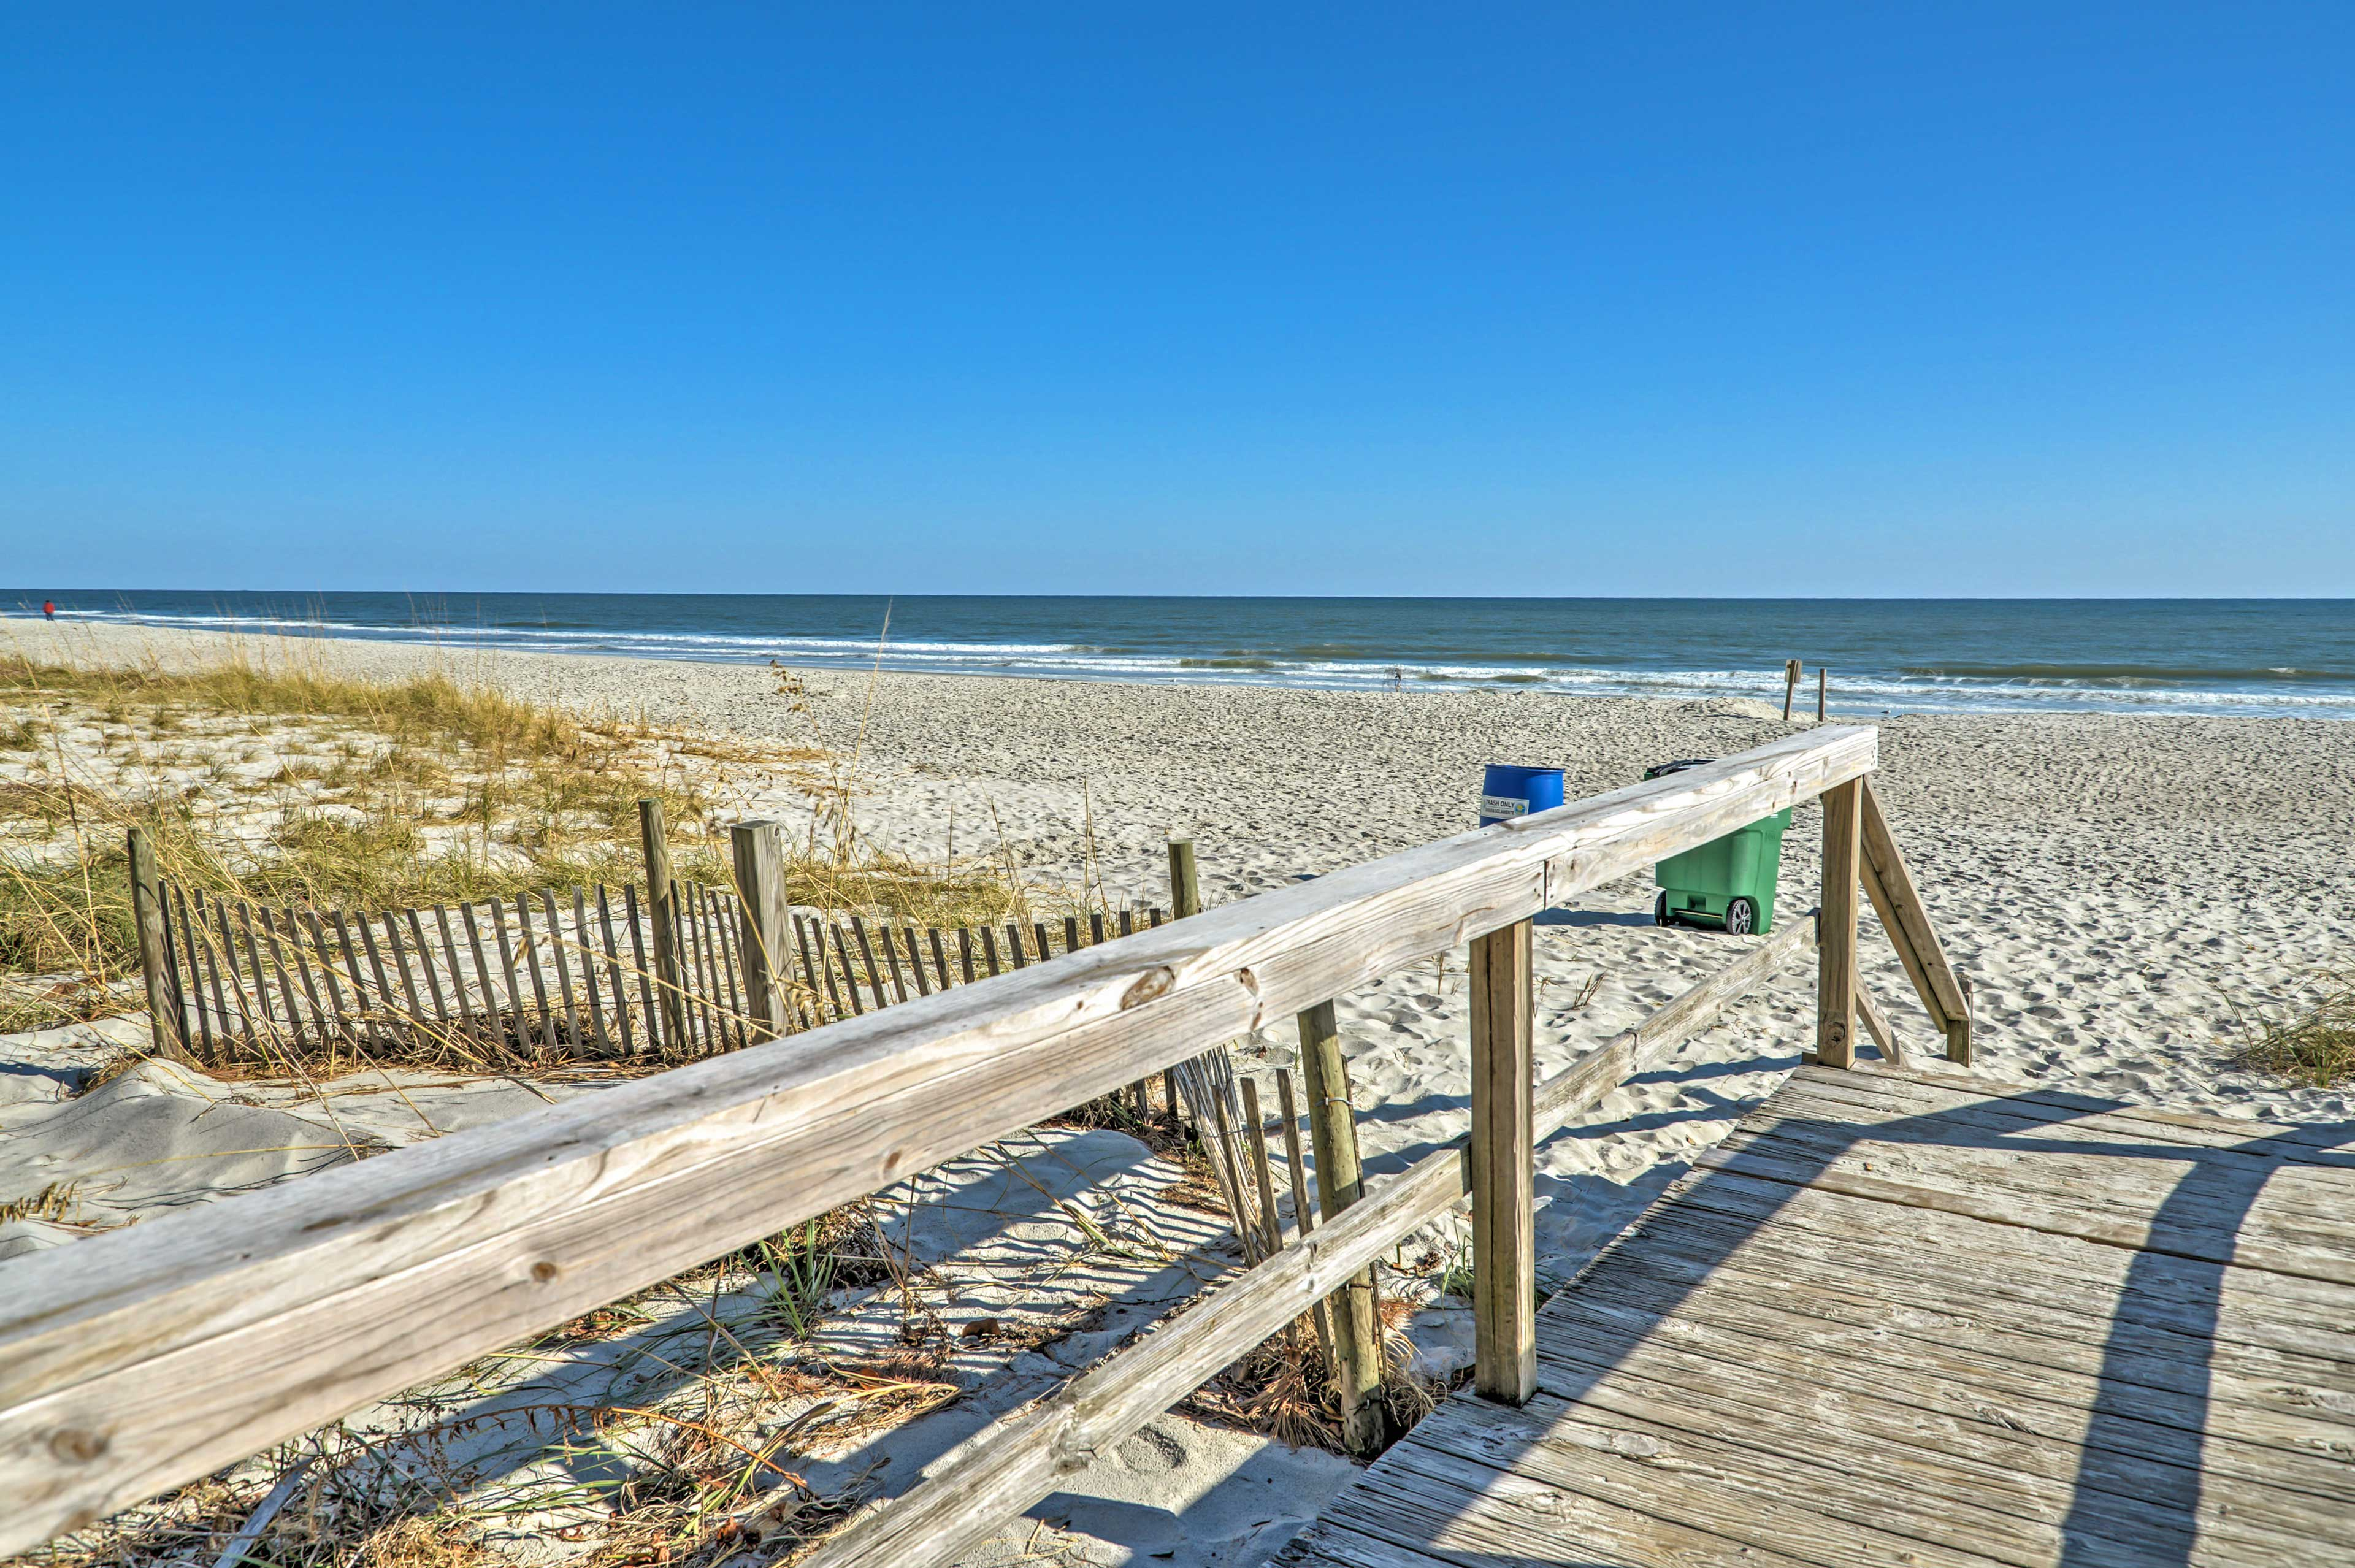 You'll never want to leave this beachside paradise!